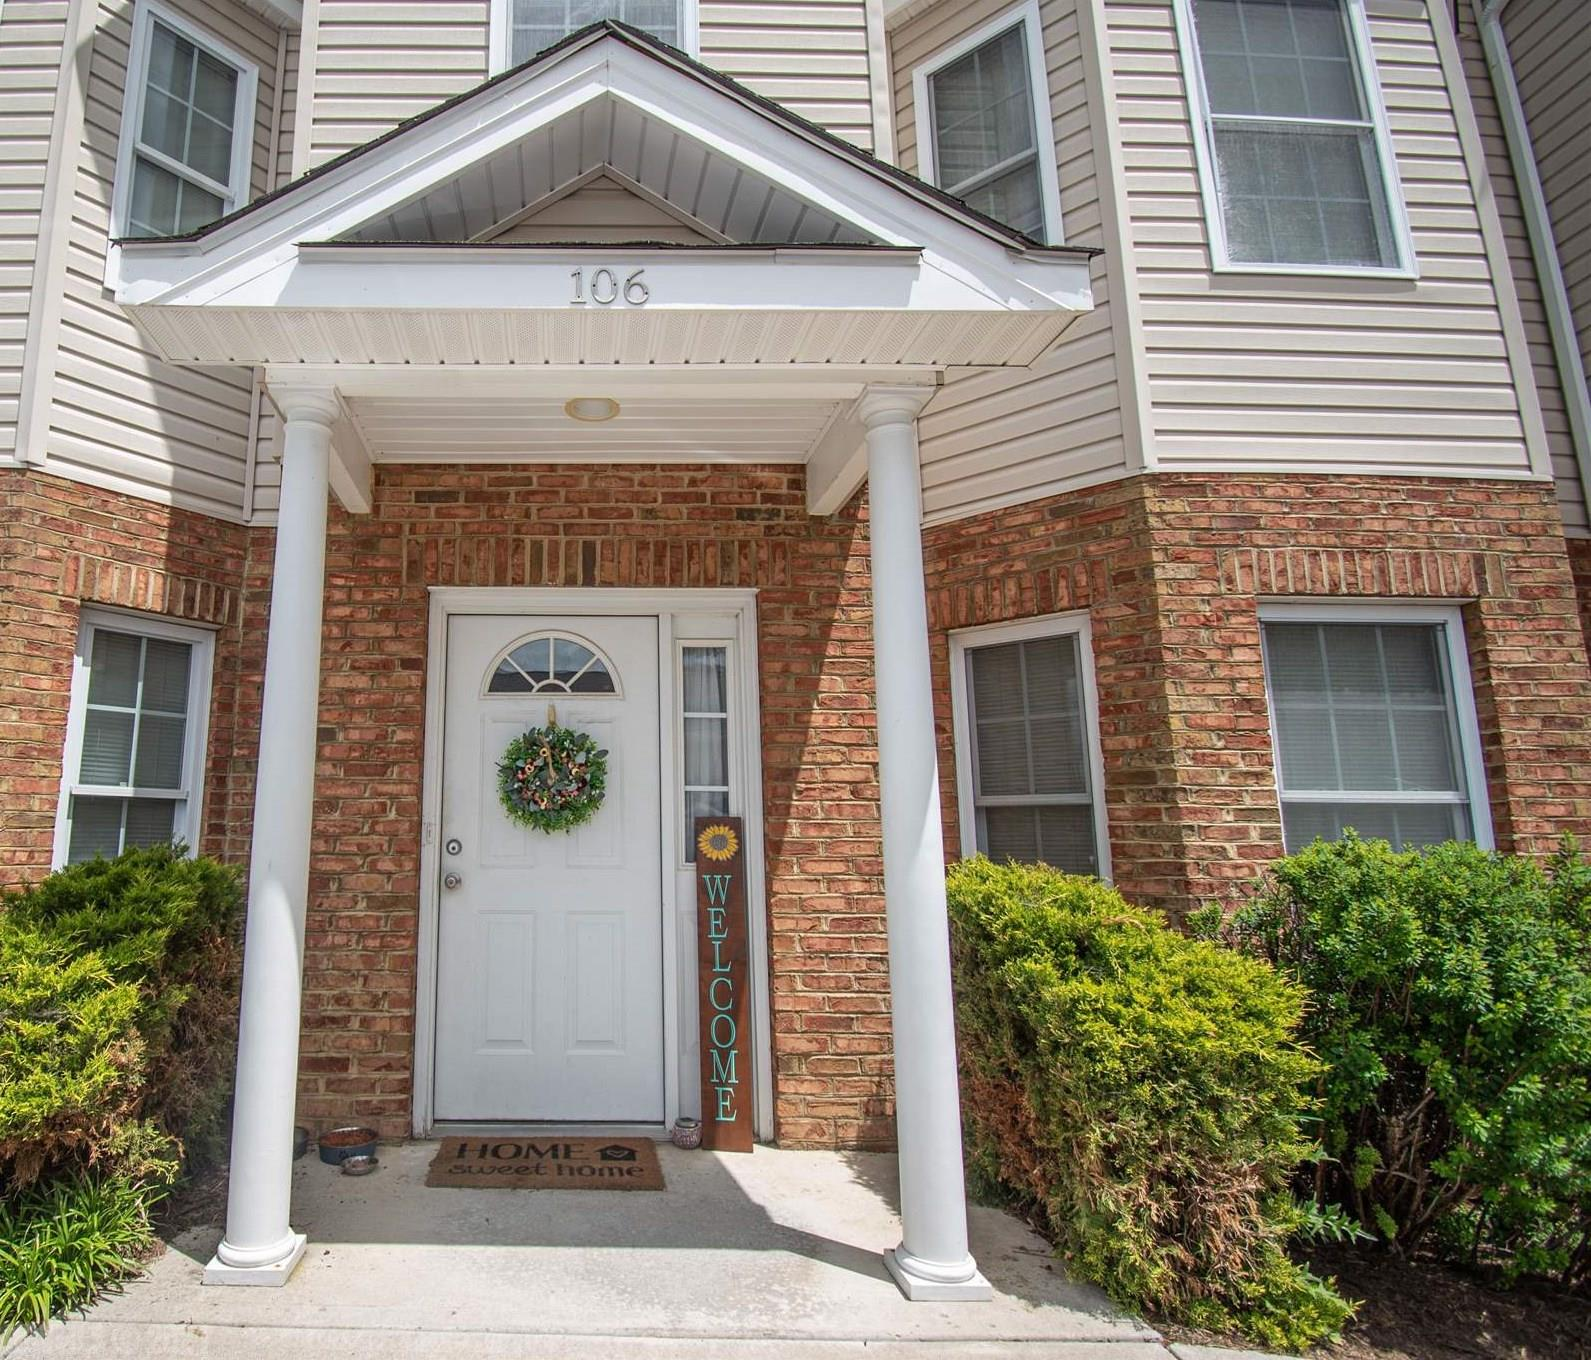 Well maintained Radford townhome in a convenient location to Radford University, shopping, and I-81! Enter on the lower level to find a spacious bedroom with full bath as well as a large storage area. The main level offers abundant light throughout the open concept consisting of living, kitchen, and dining rooms, as well as access to the patio. On the upper level, you will find two bedrooms with ample closet space as well as a shared full bathroom. 106 Sutherland Drive has great potential as an investment property or as your home-sweet-home!